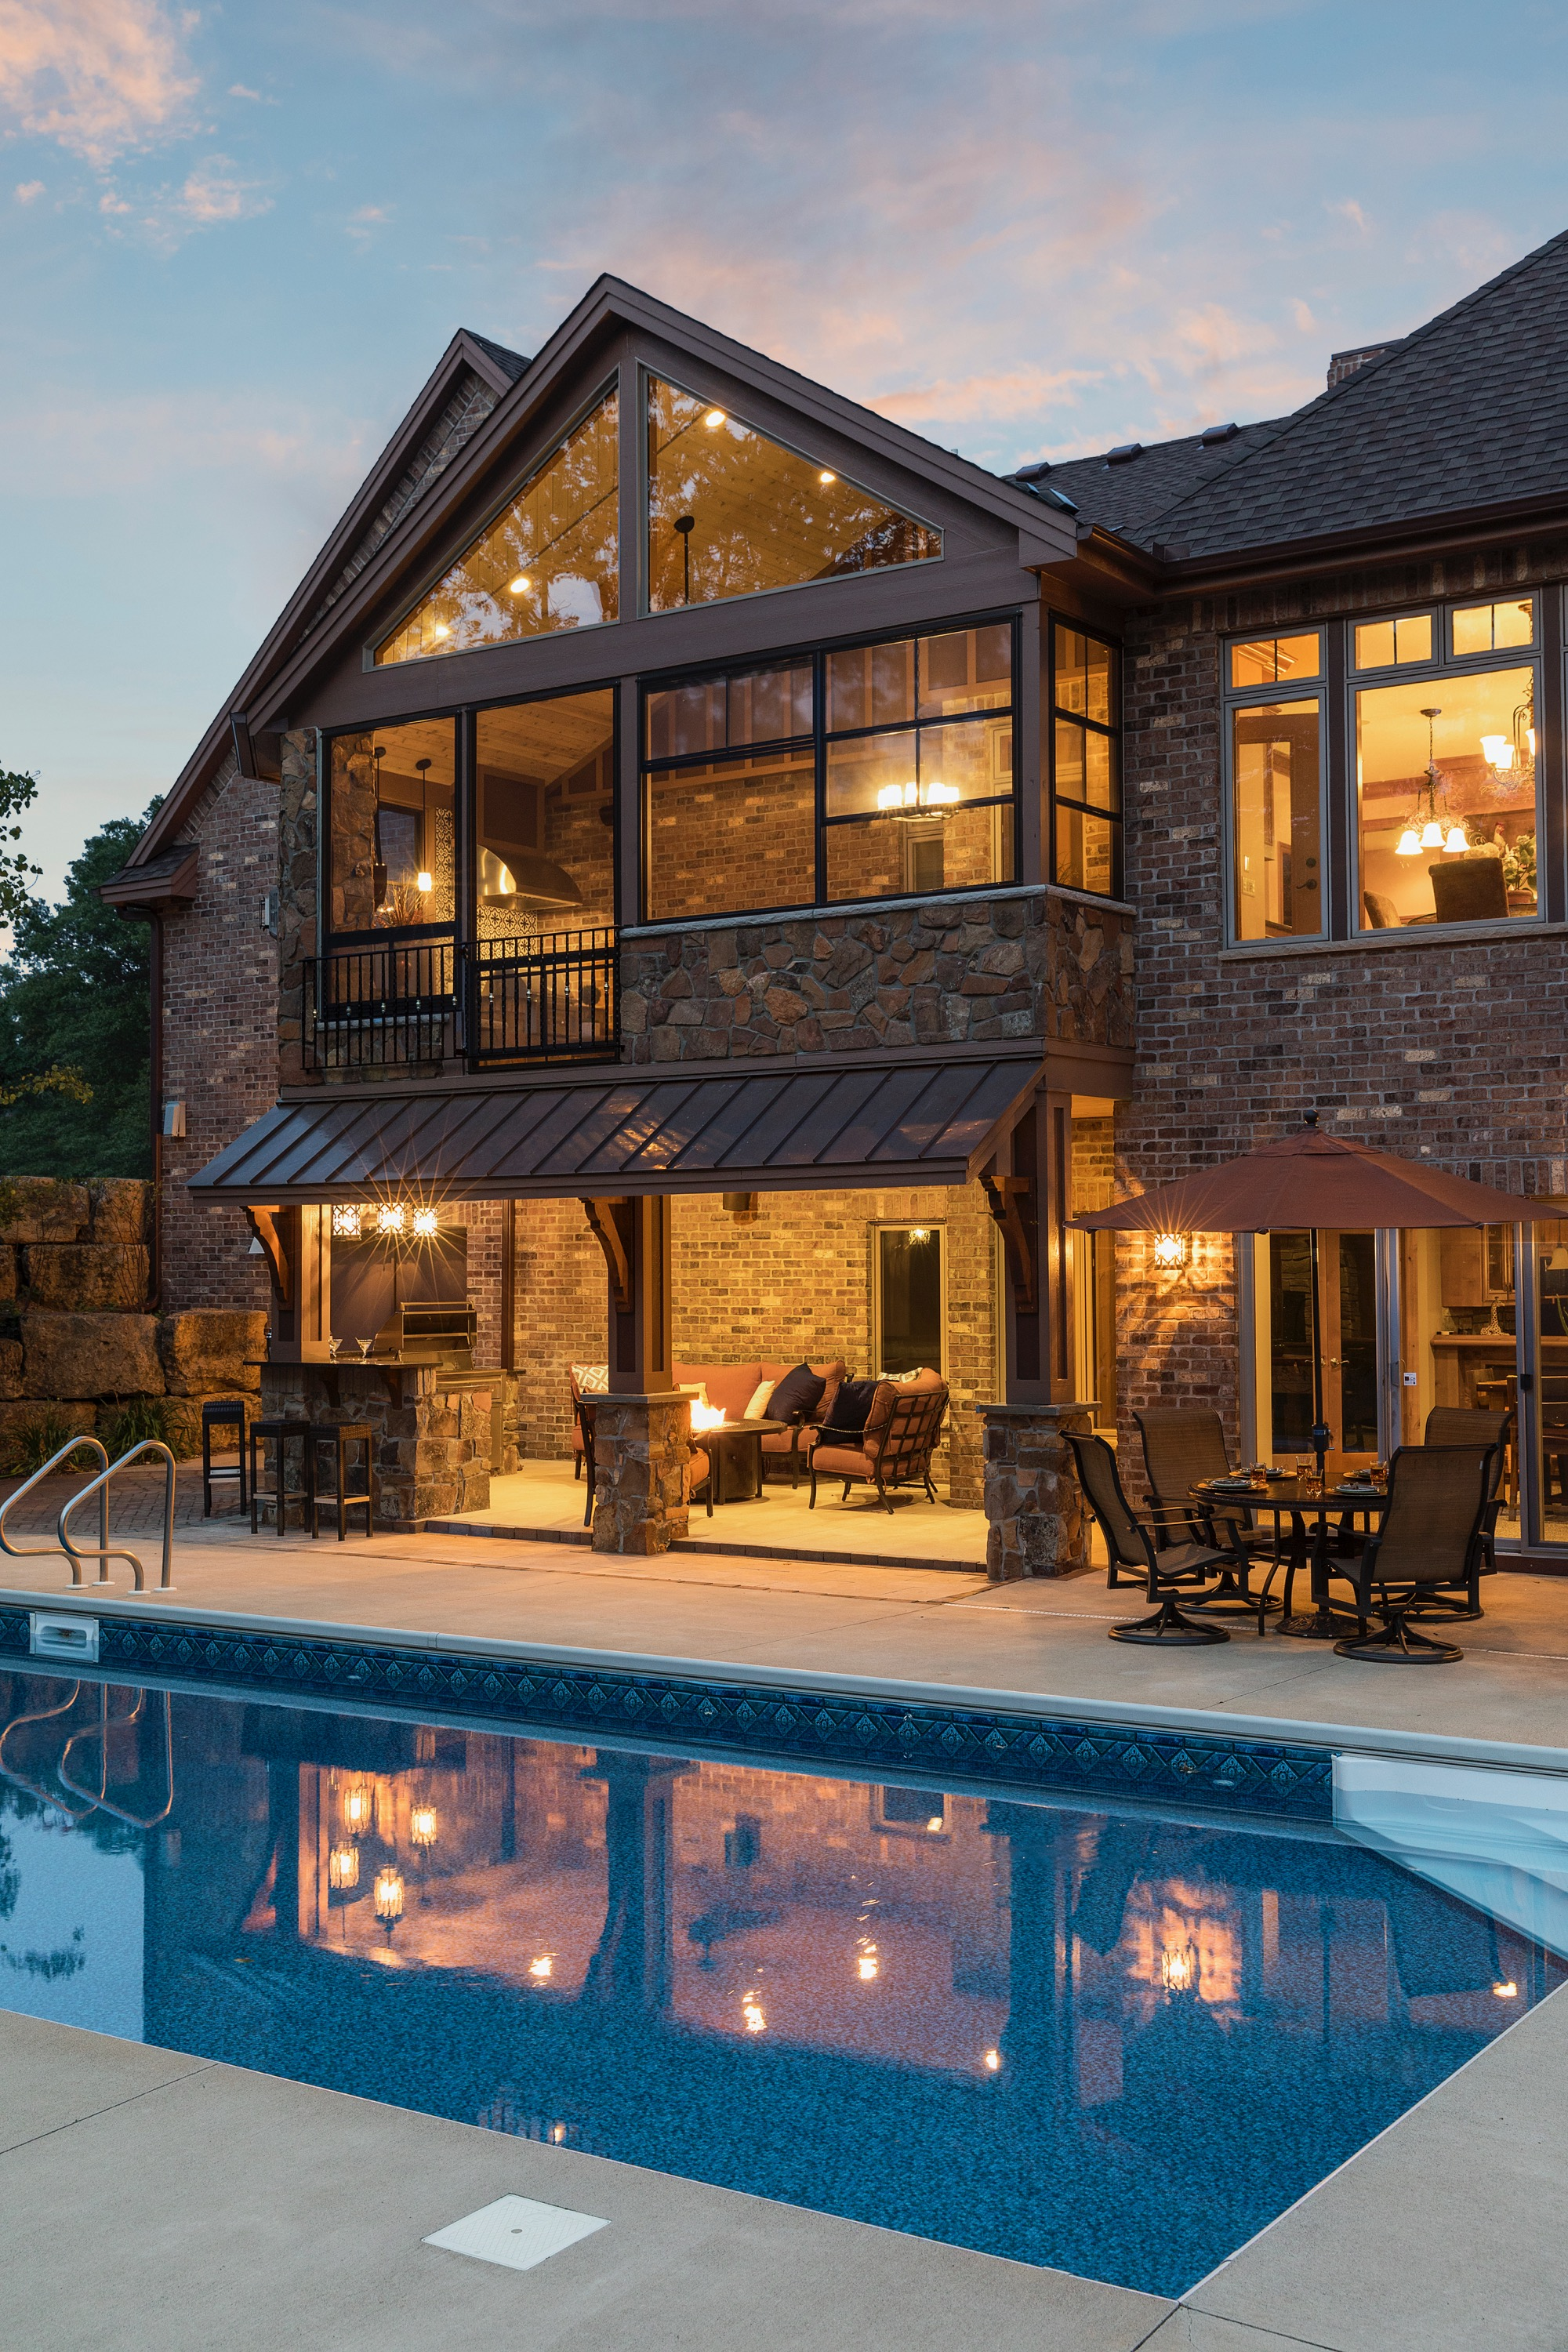 Moms Design Build - Outdoor Pool house Lounging HGTV